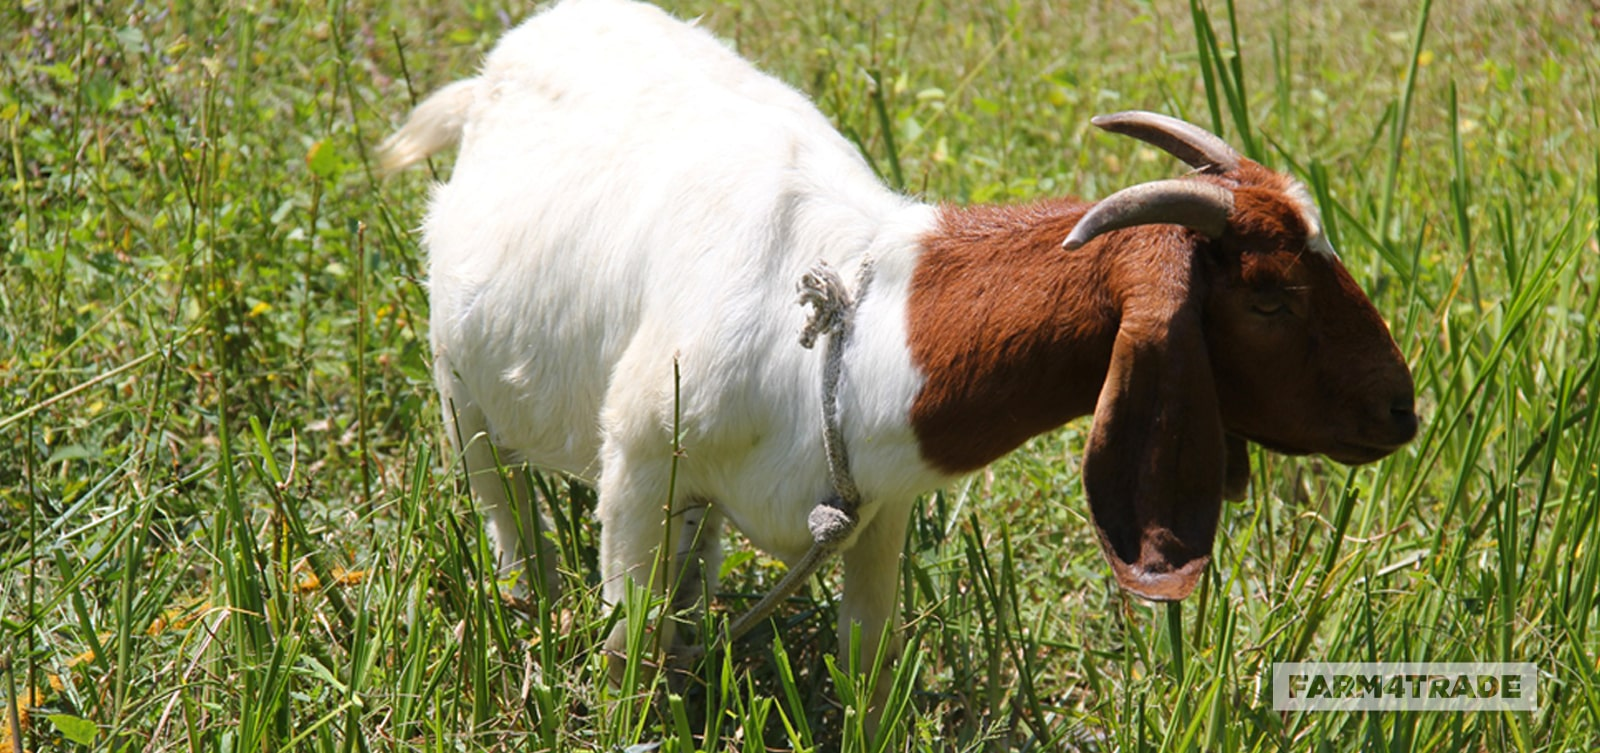 Farm4Trade-Show Boer Goat_Tips on what to look for during selection